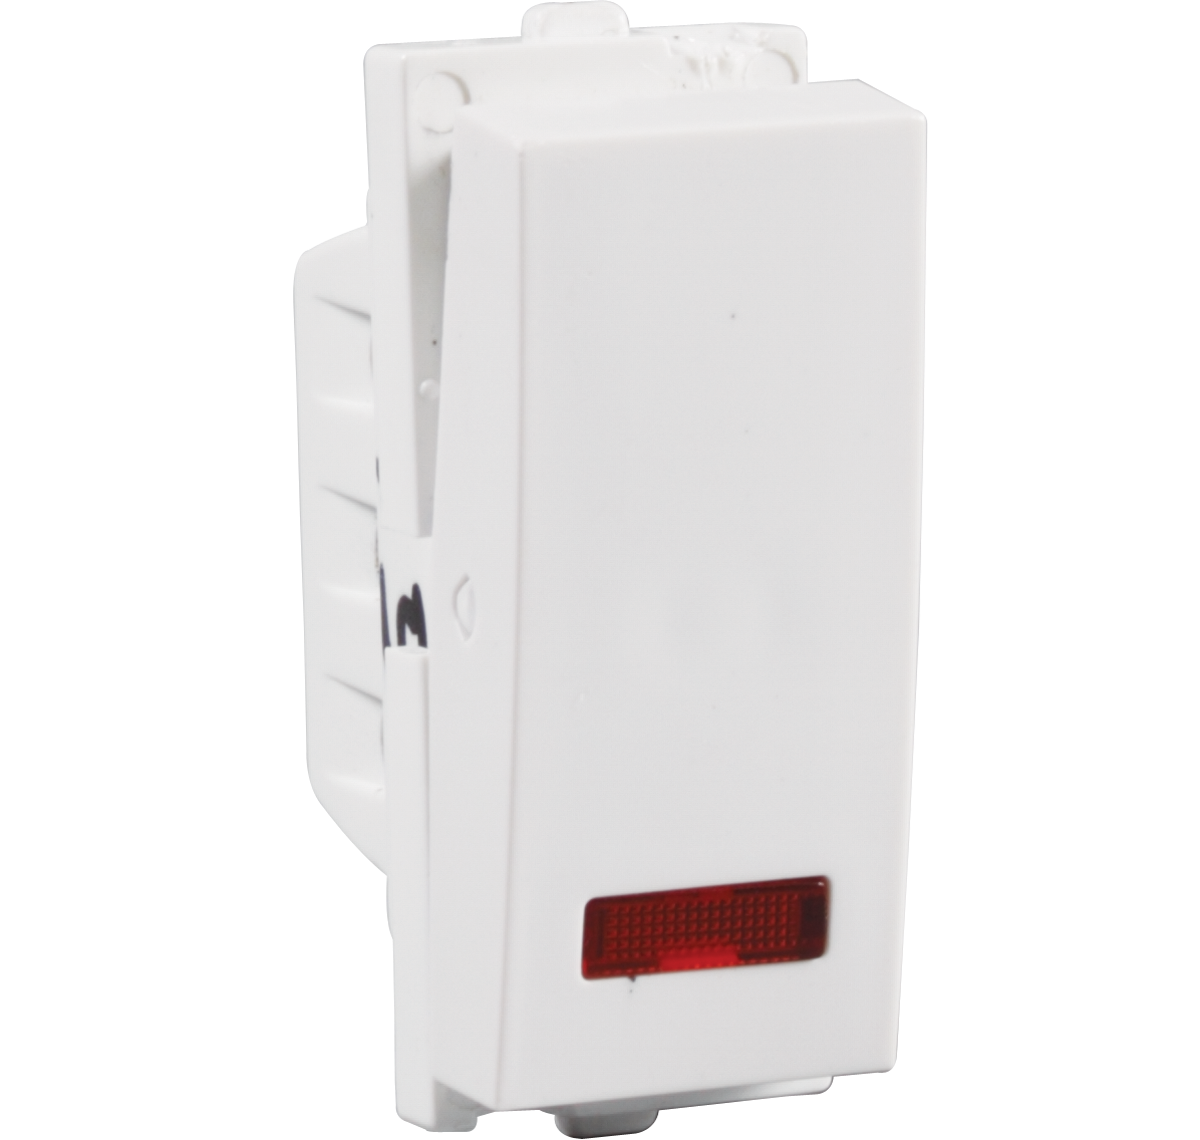 Crabtree - 25 A 1way switch with indicator